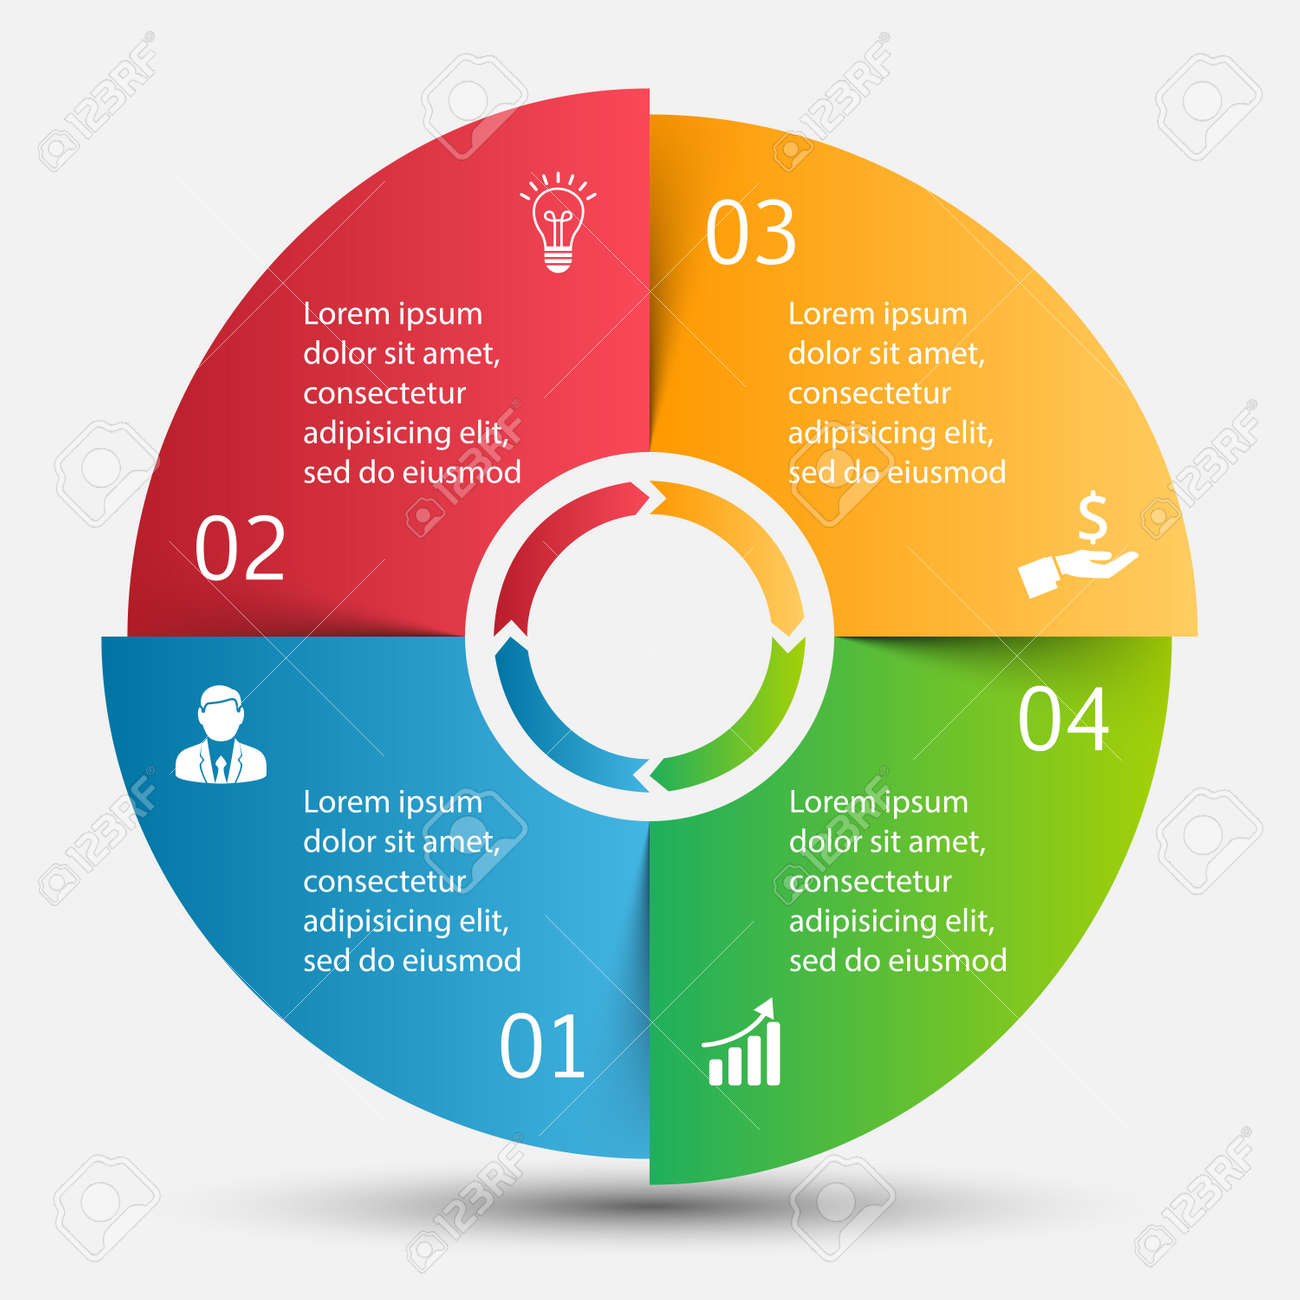 hight resolution of template for cycle diagram graph presentation and round chart business concept with 4 options parts steps or processes data visualization